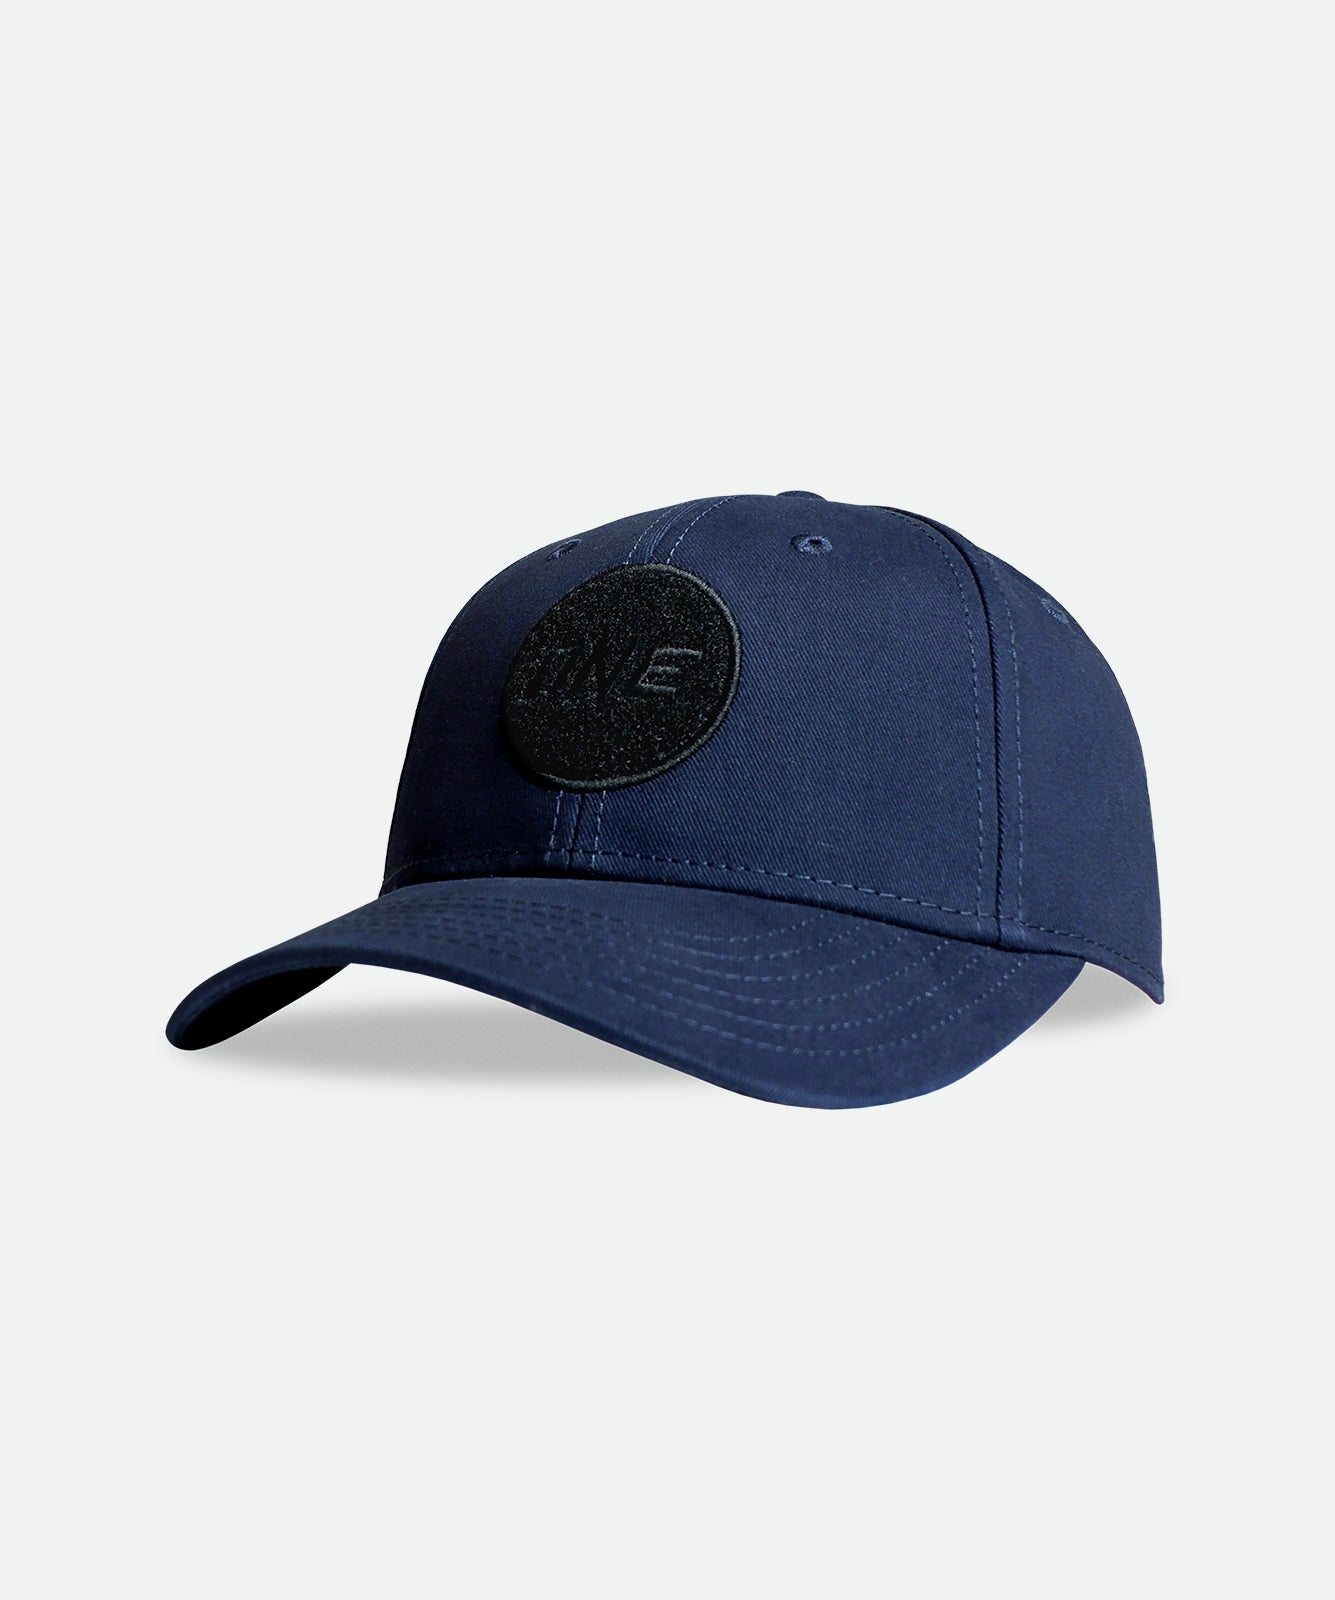 ONE Hero Cap (Navy) - ONE.SHOP | The Official Online Shop of ONE Championship